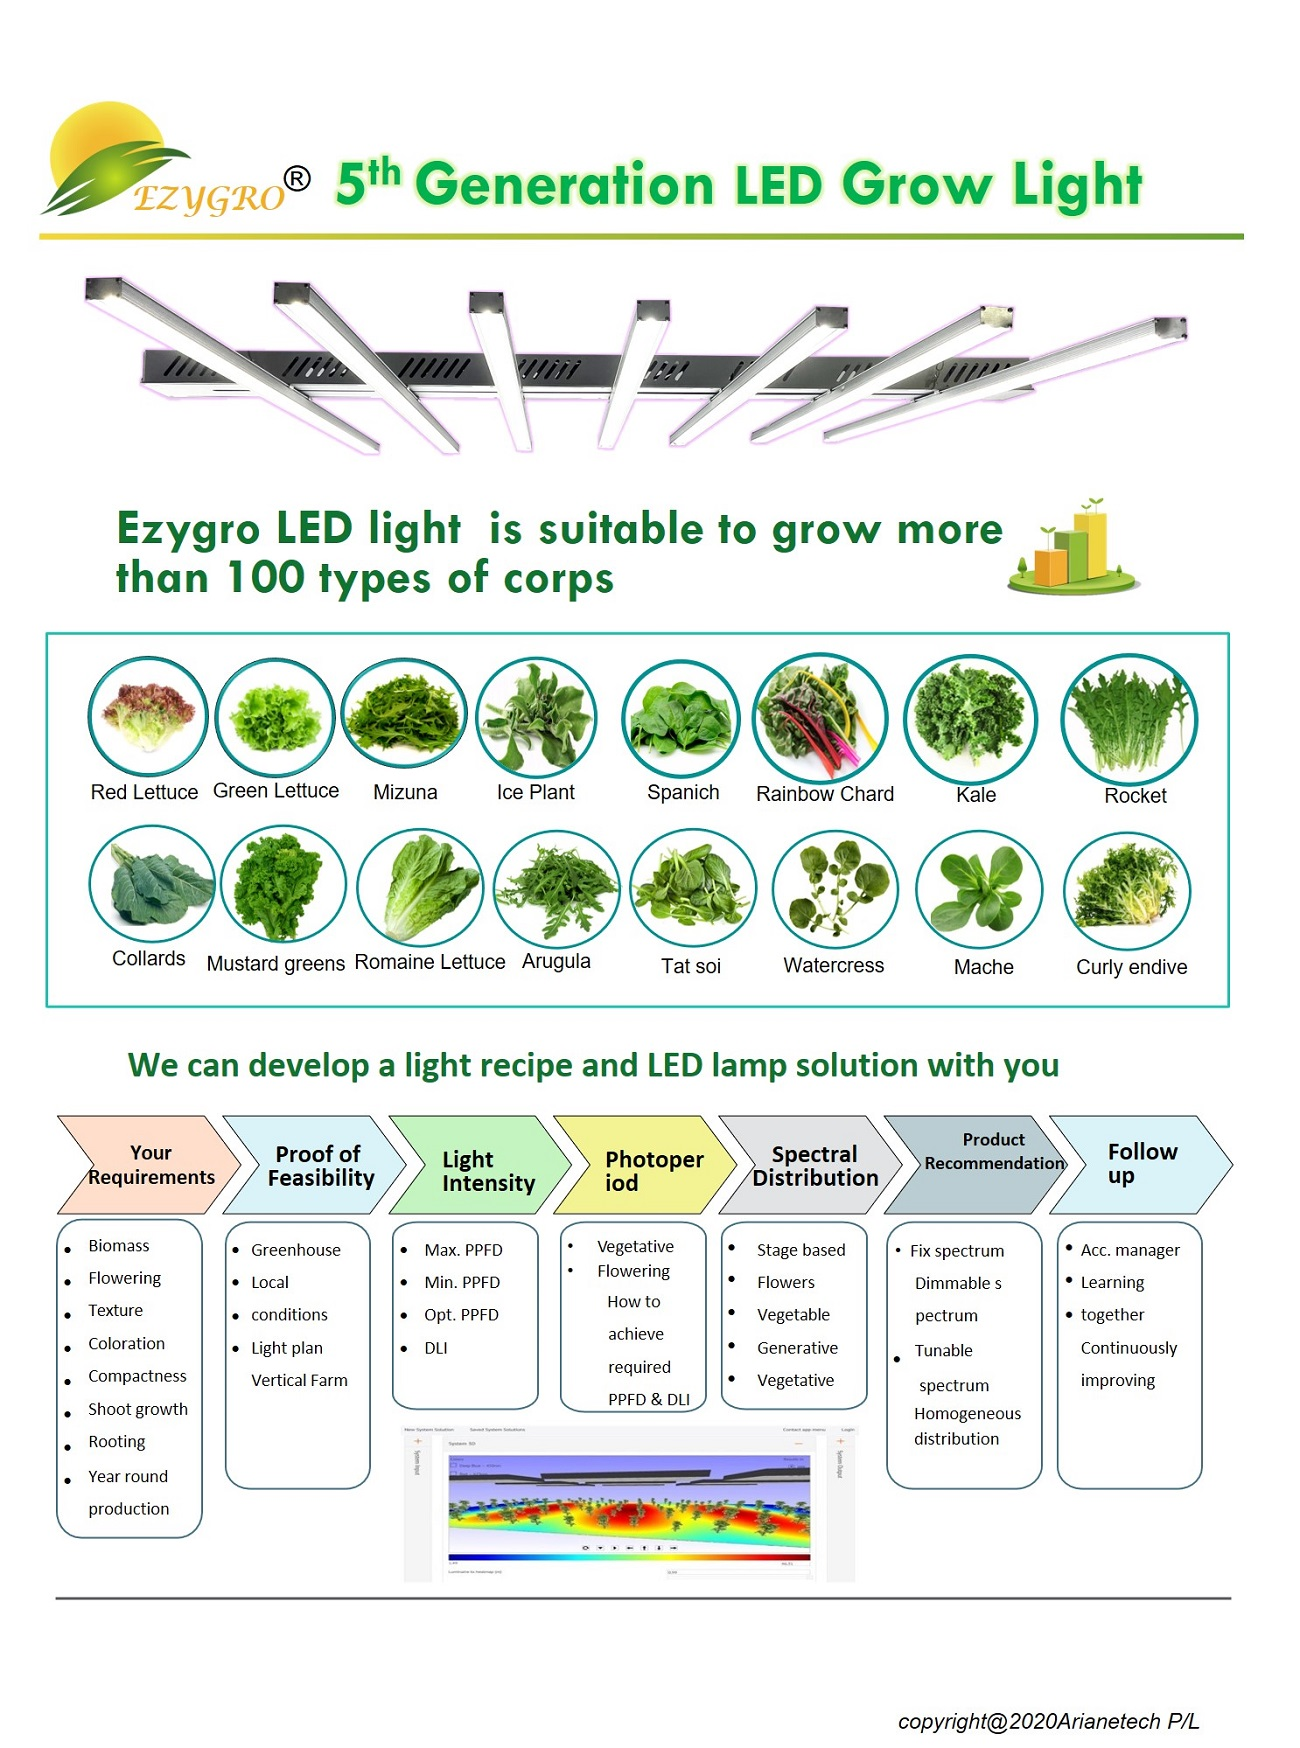 5 generation ezygro led grow light bar for crops in vertical farming 14